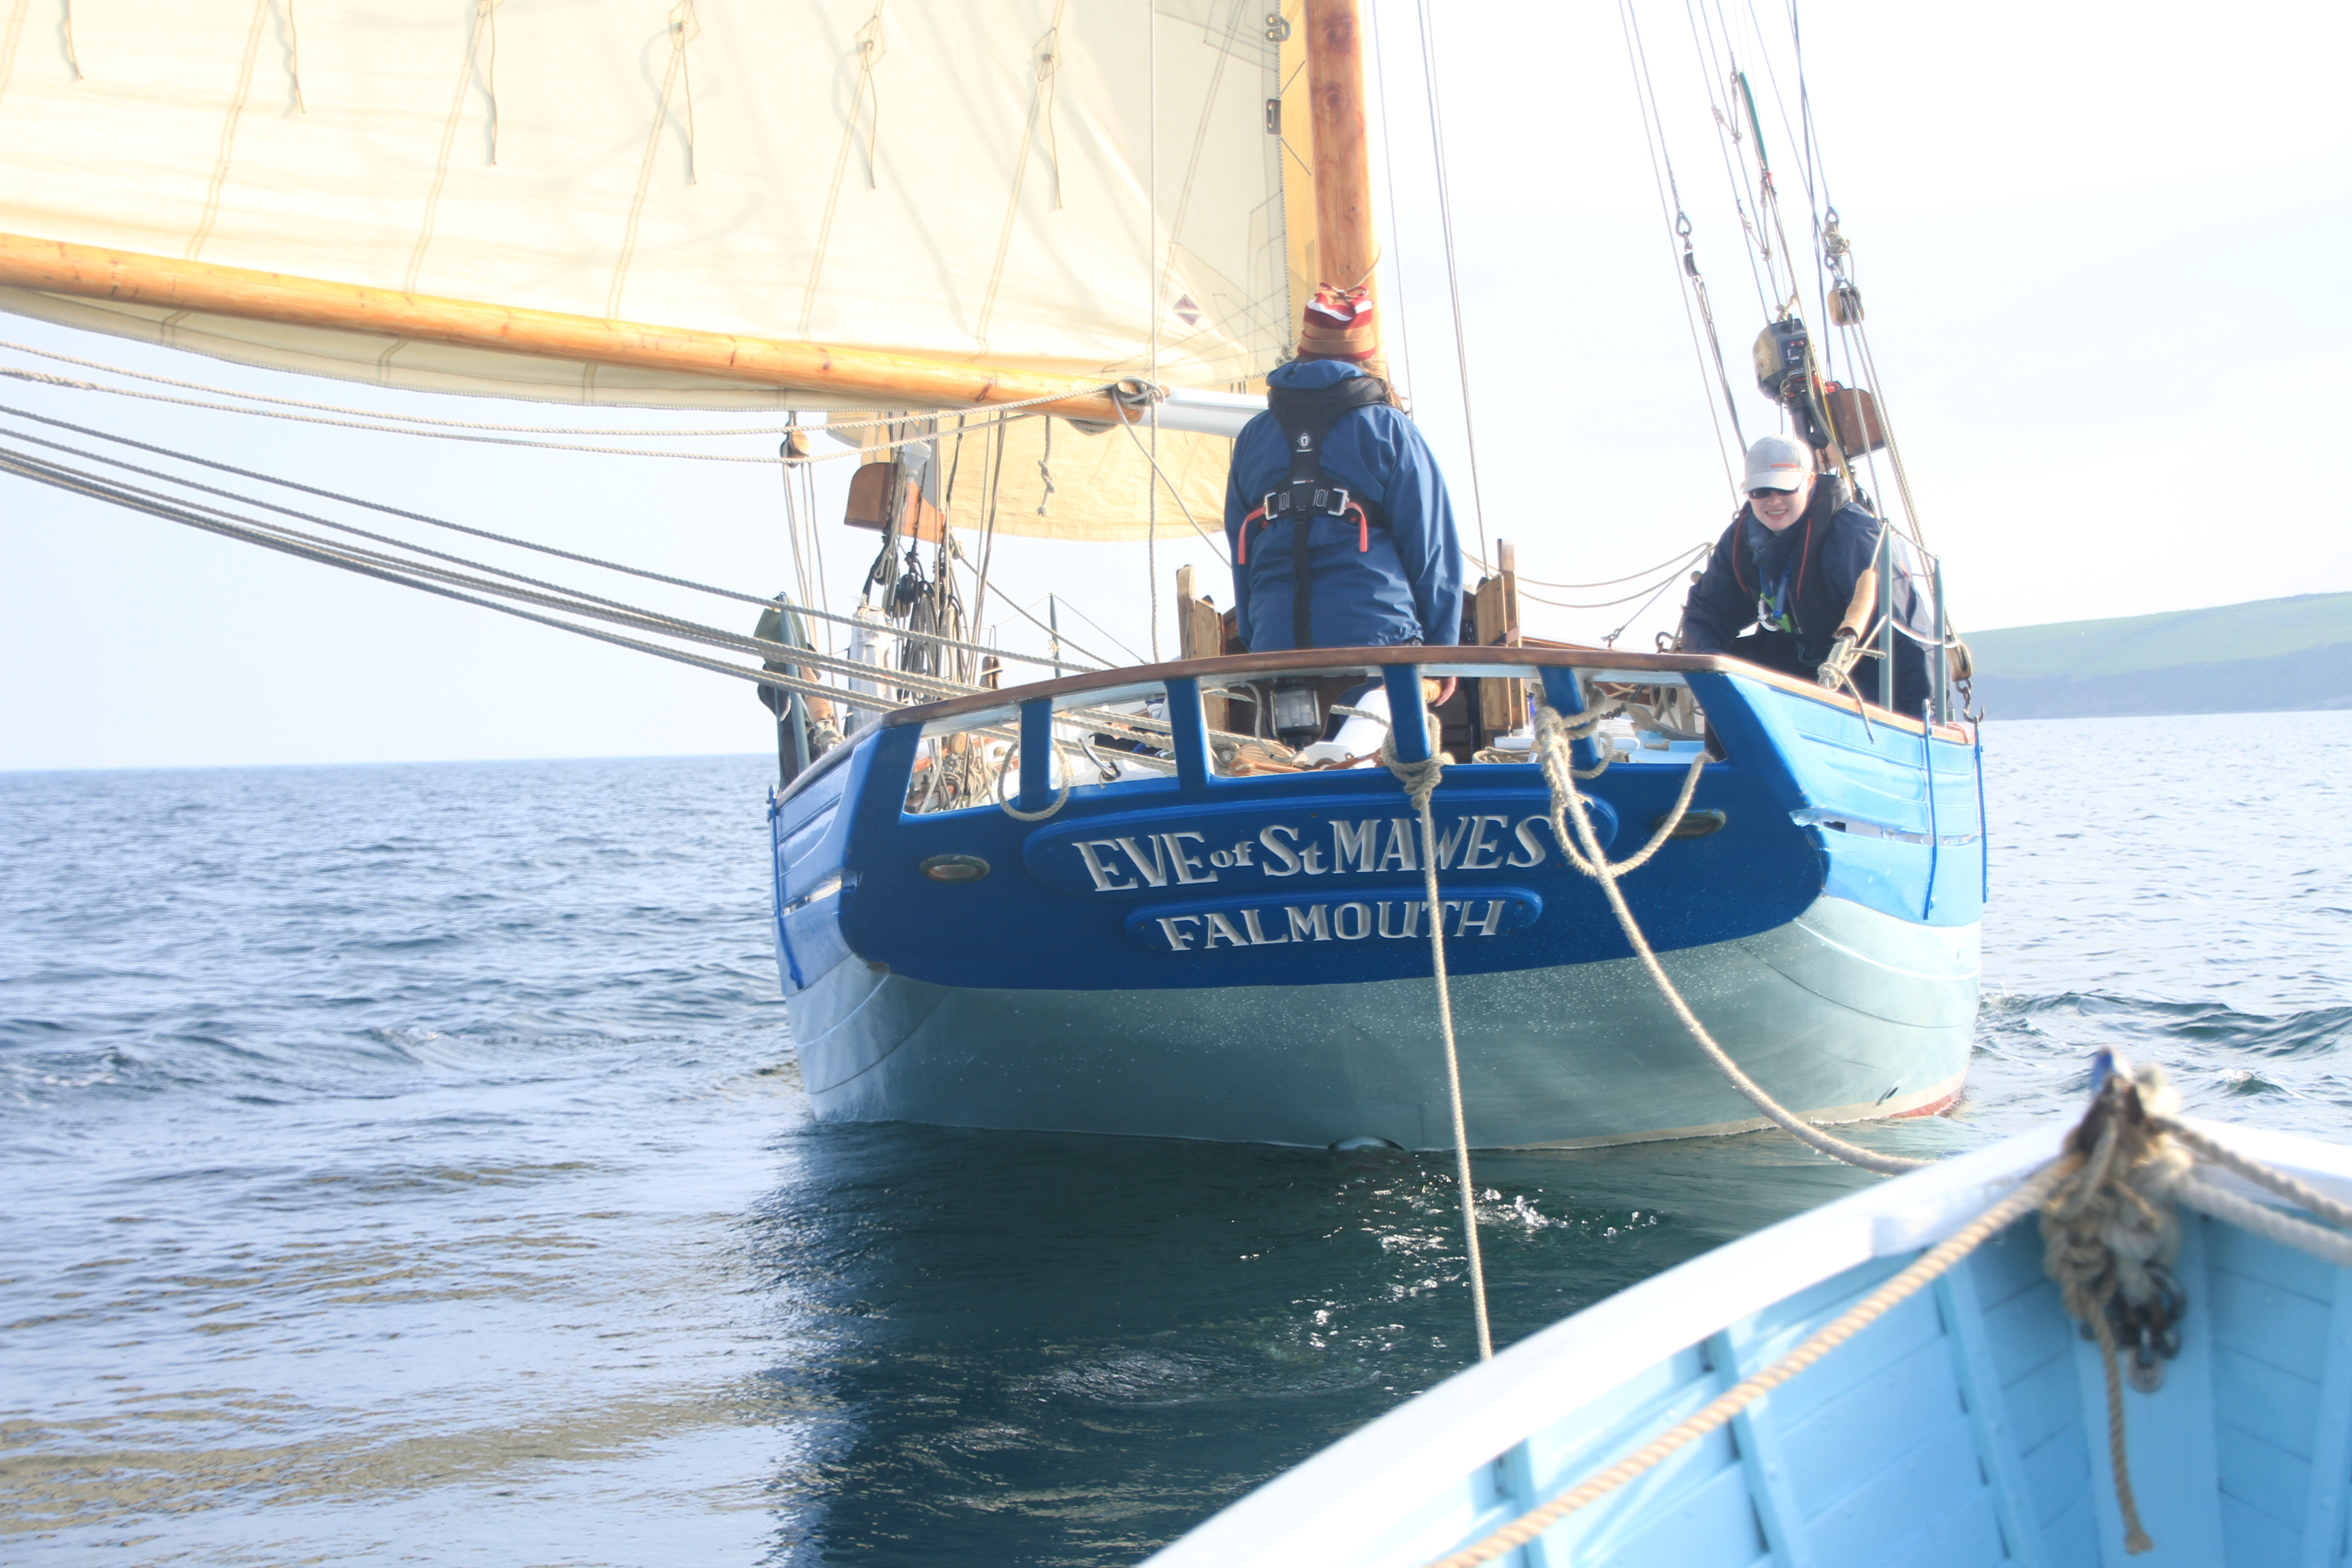 Towing No 8 behind Eve